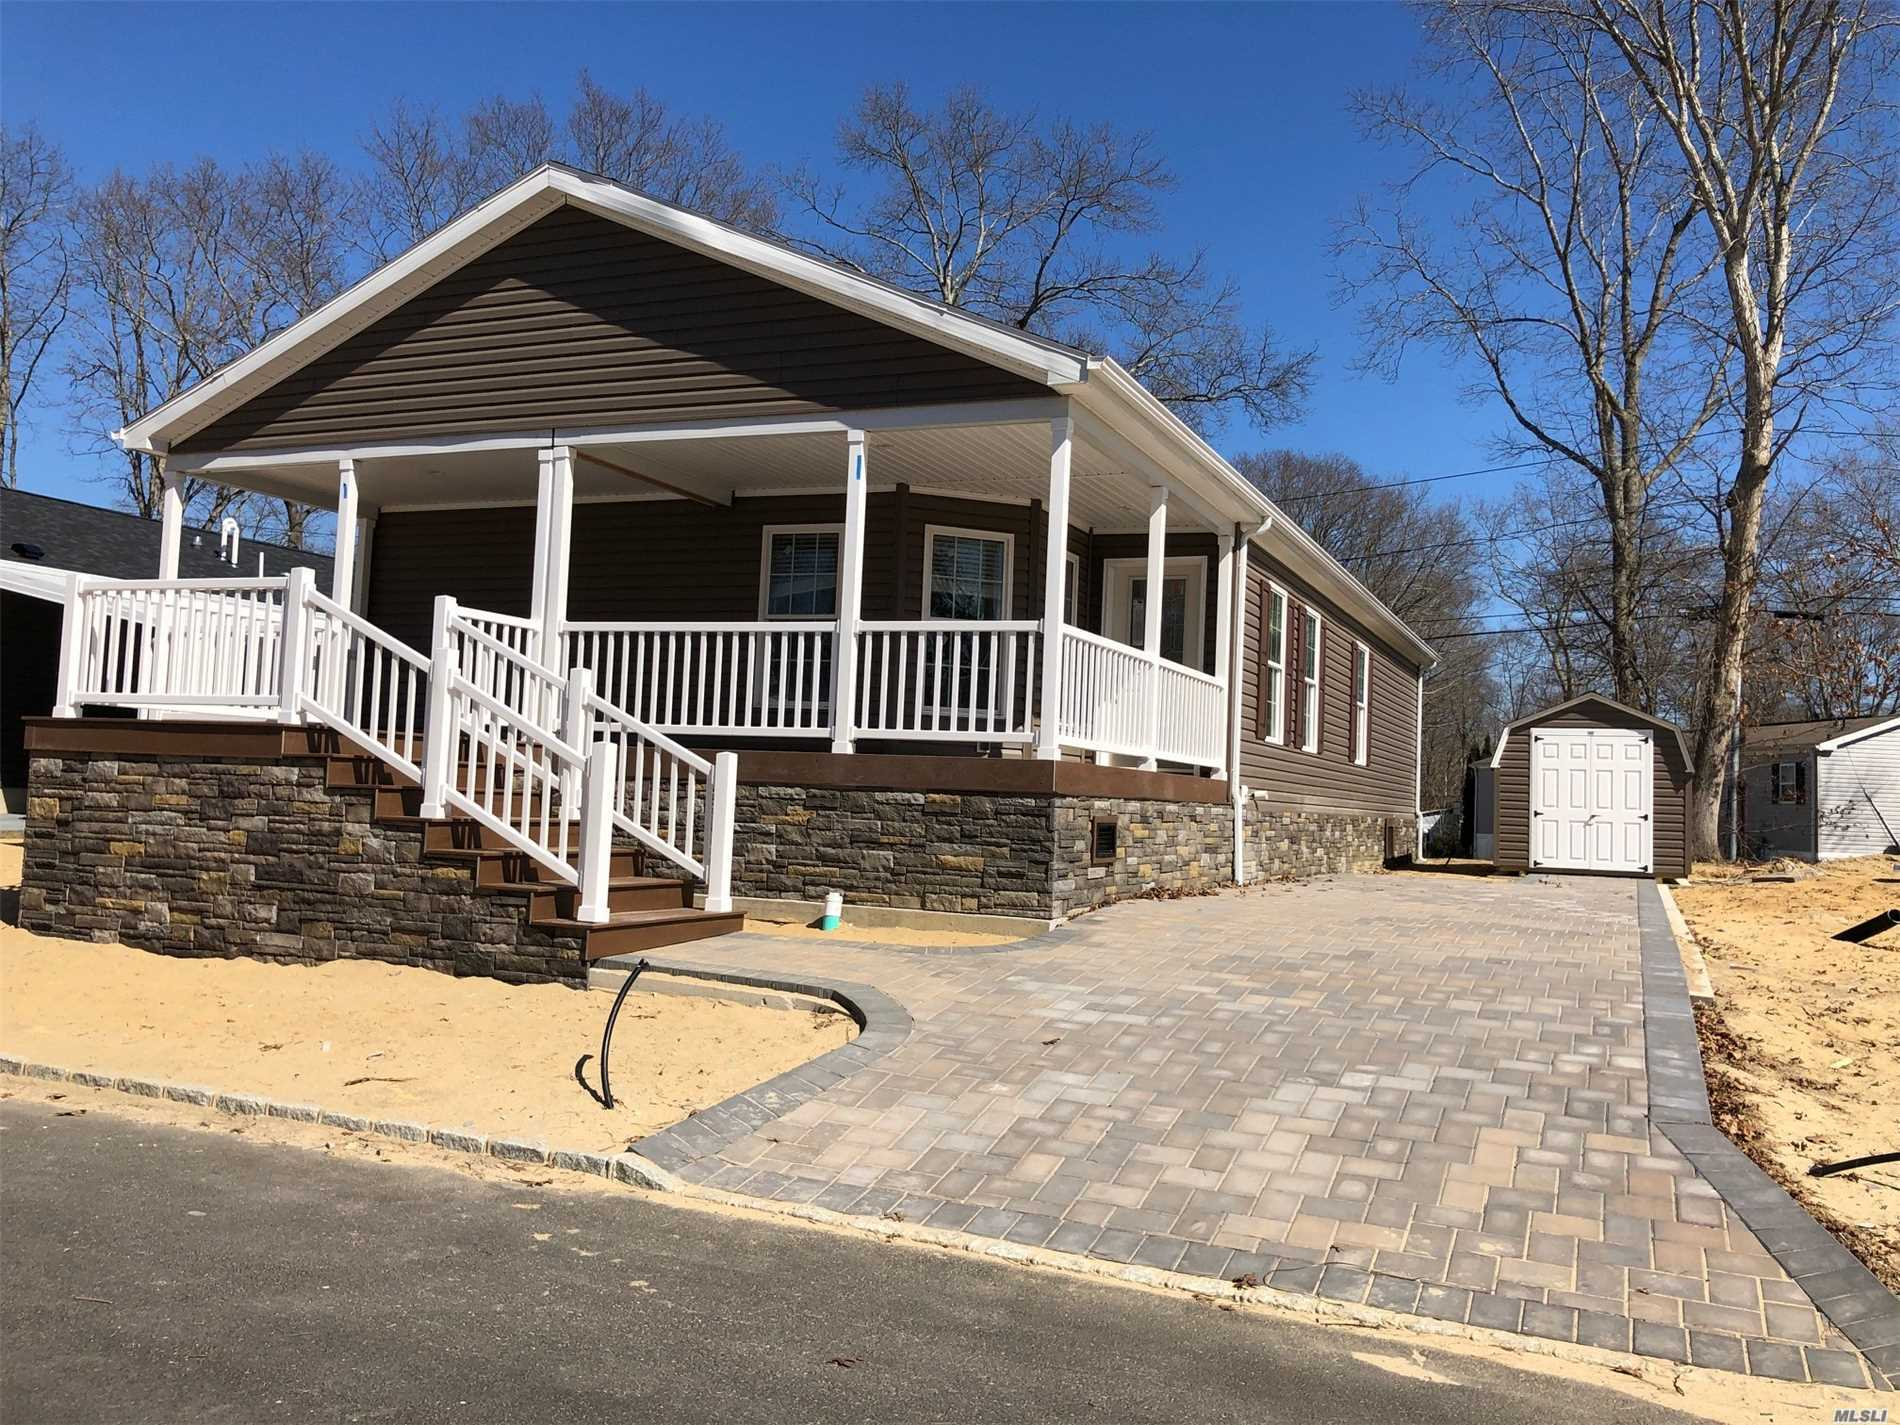 1661-580 Old Country Rd Riverhead, NY 11901